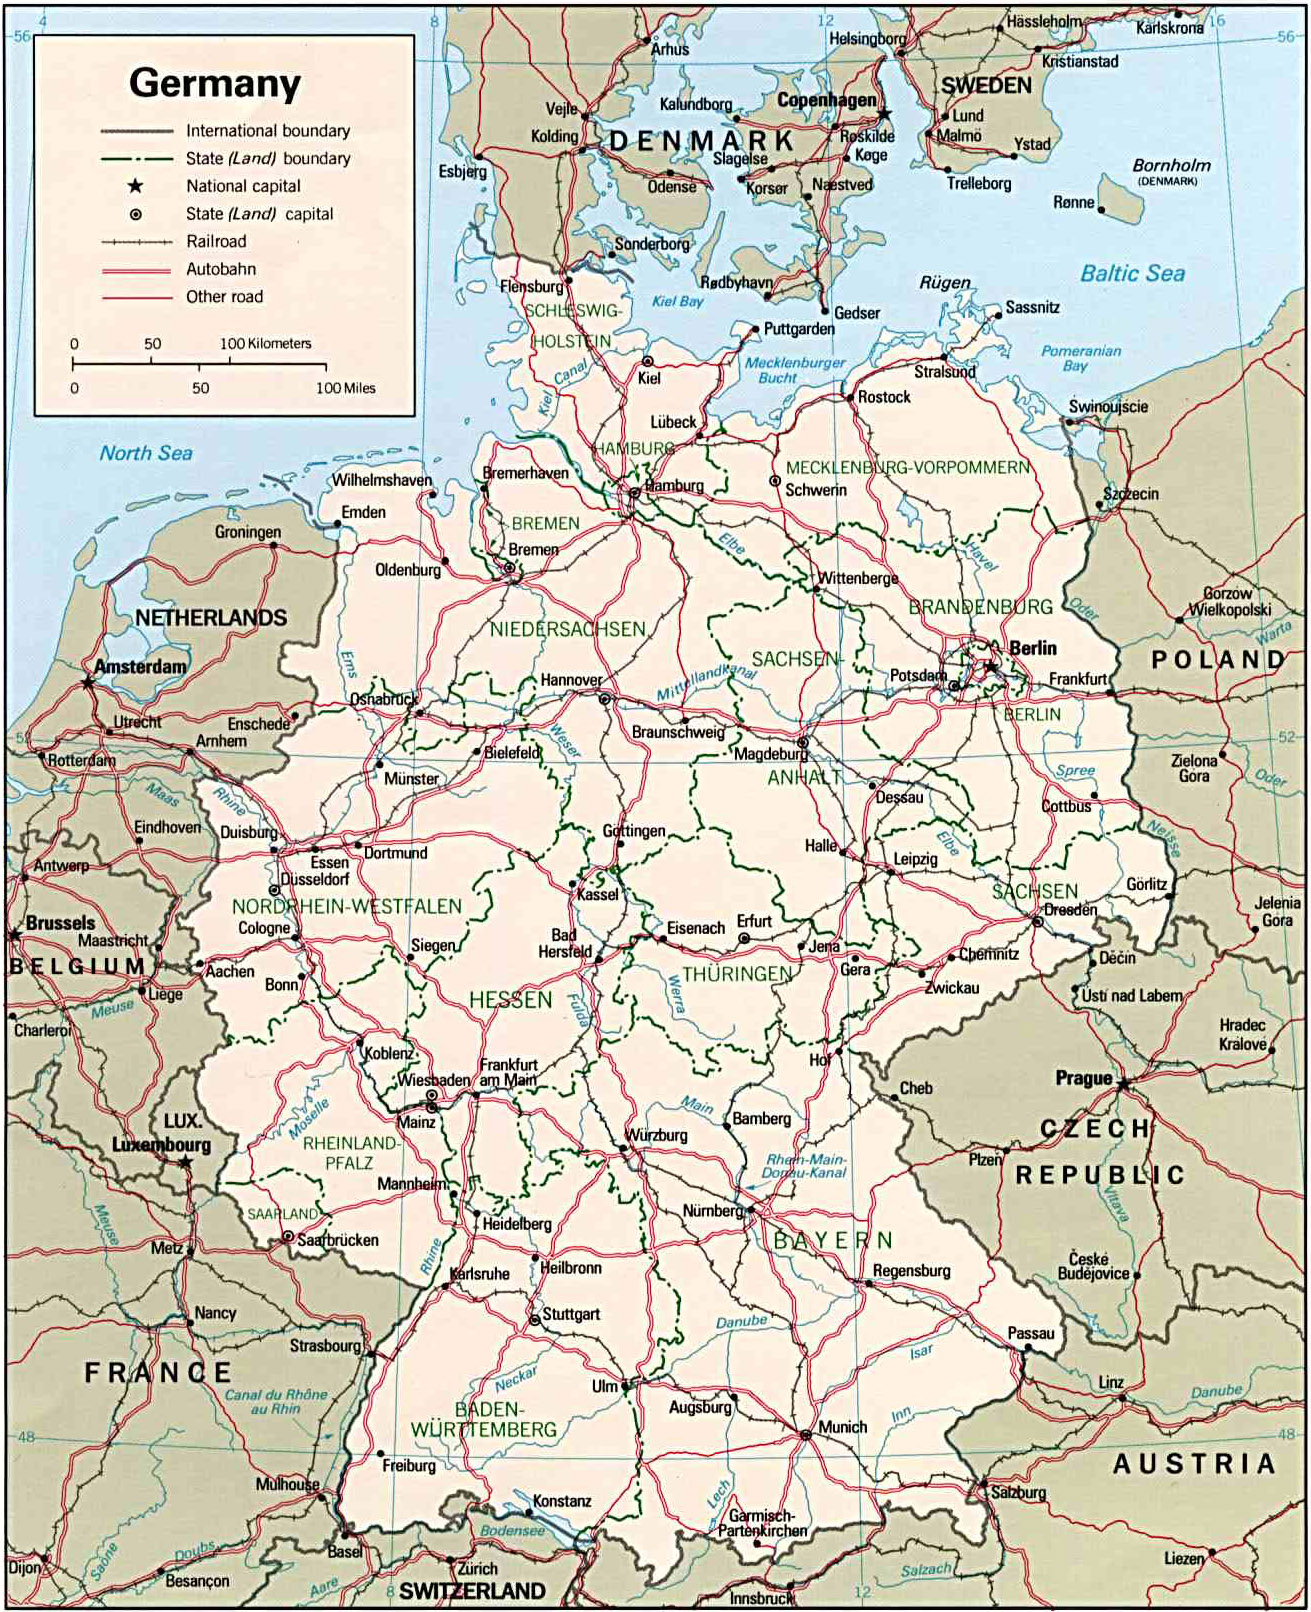 Karte Der Bundesrepublik Deutschland Map Of Germany